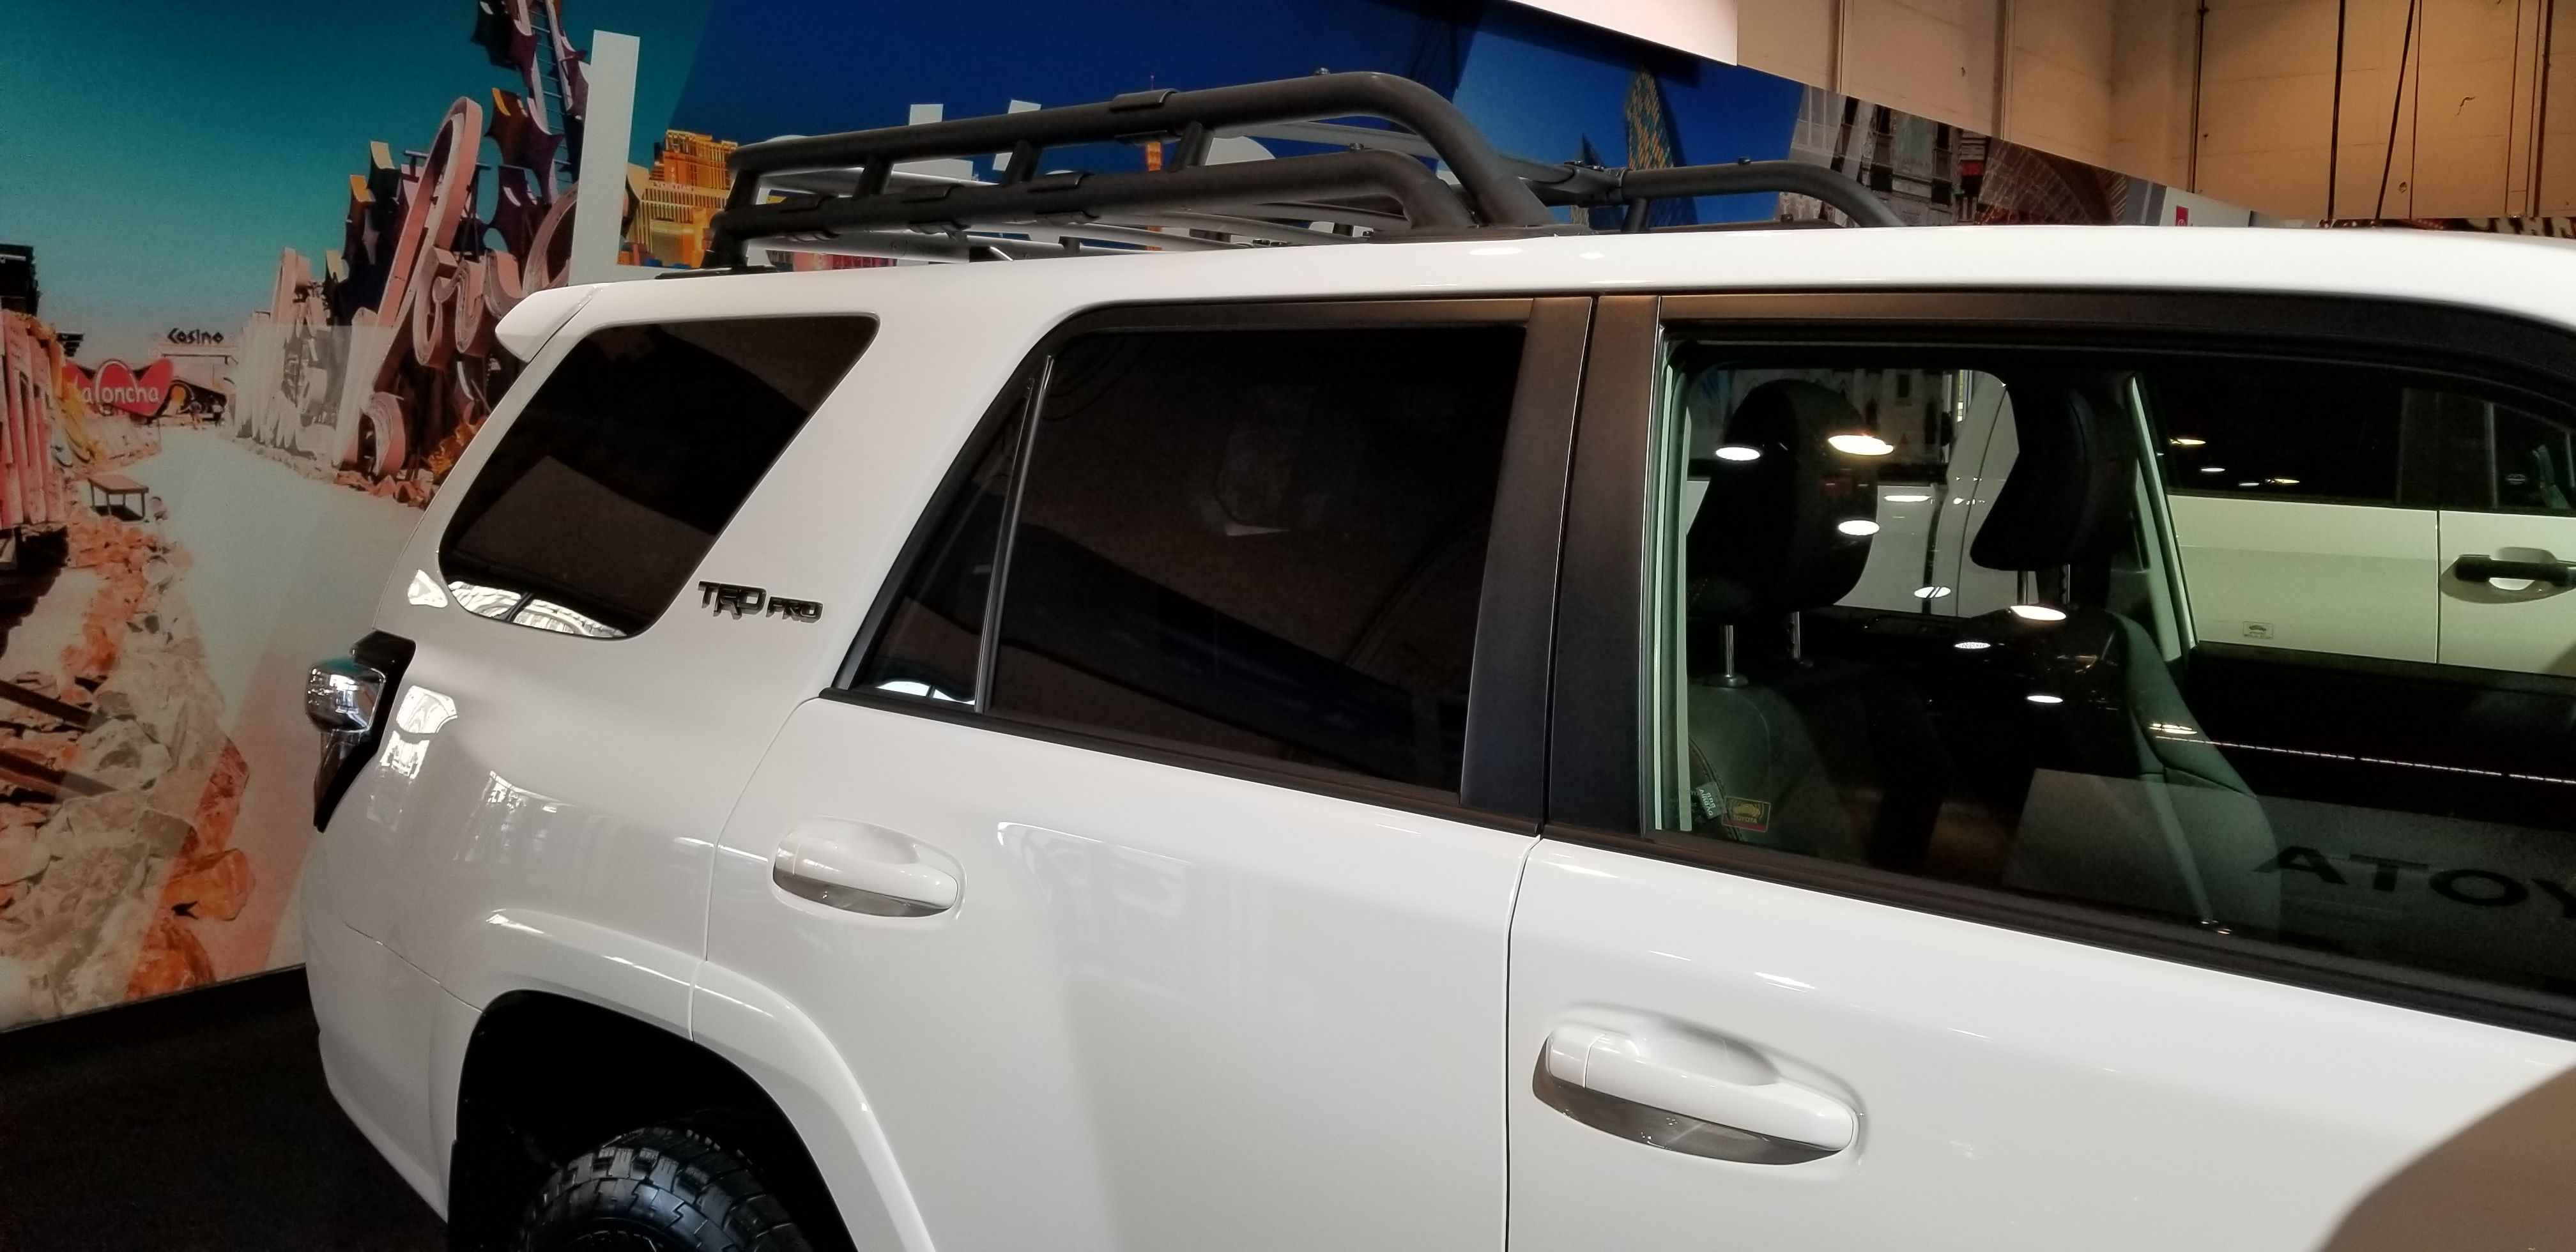 4runner 4runner 4runner Accessories Roof Racks